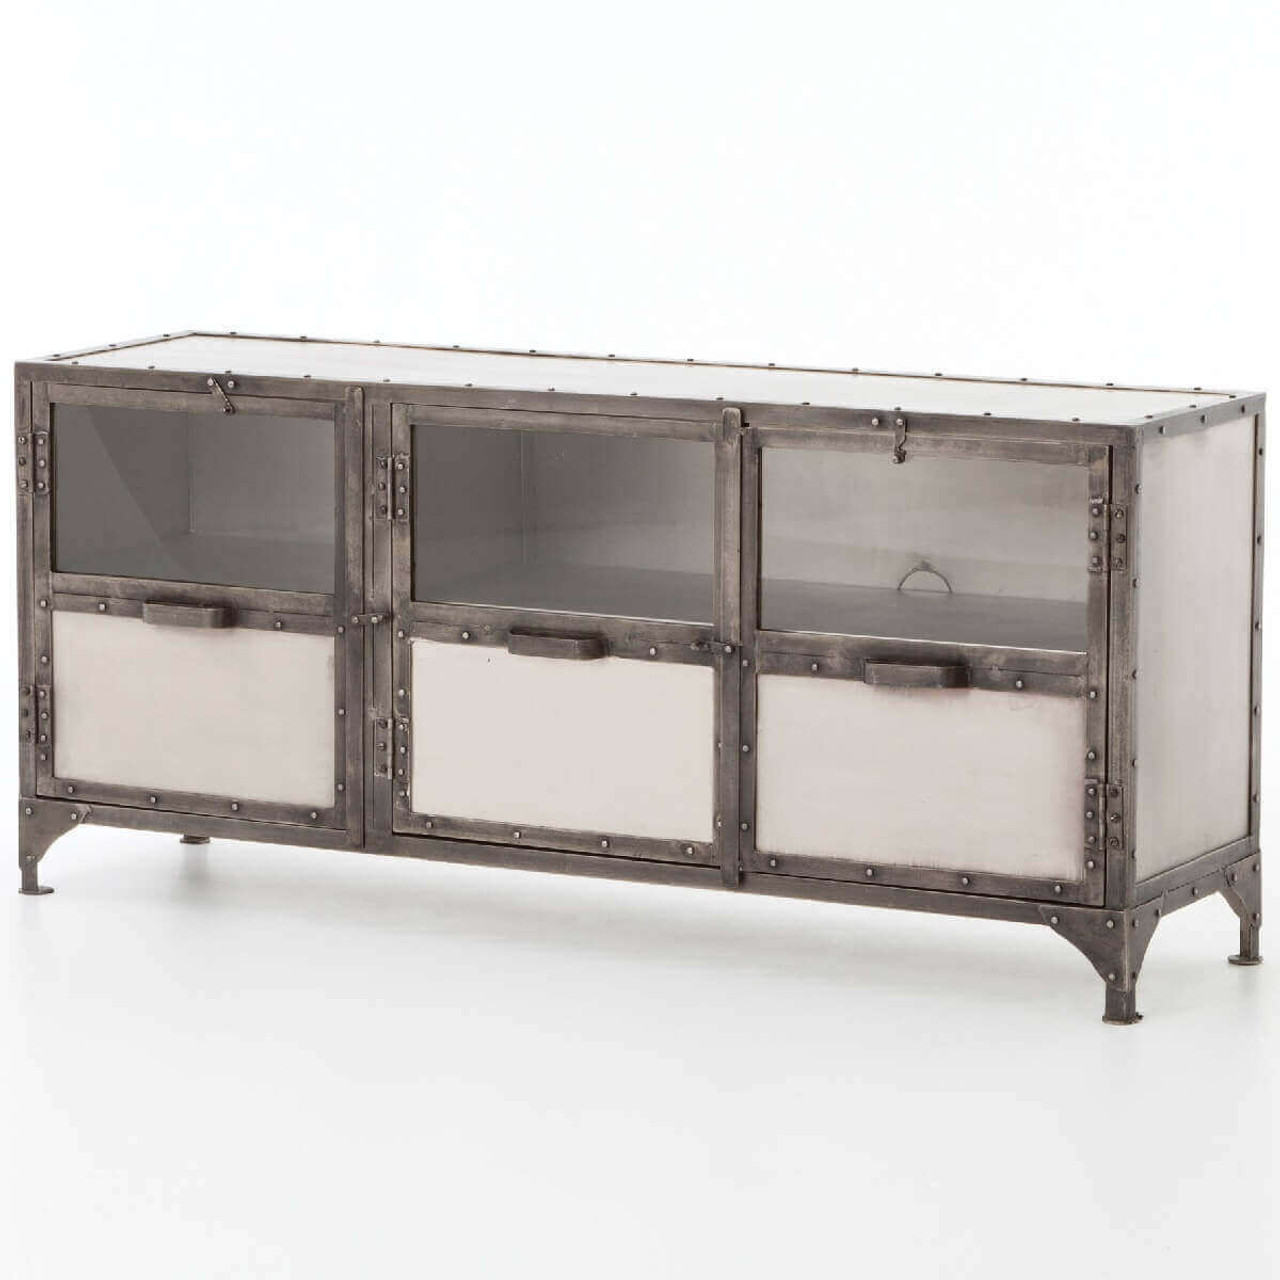 Element Industrial Iron Media Cabinet -Nickel - Element Industrial Tv Media Chest In Antique NIckel Finish Zin Home